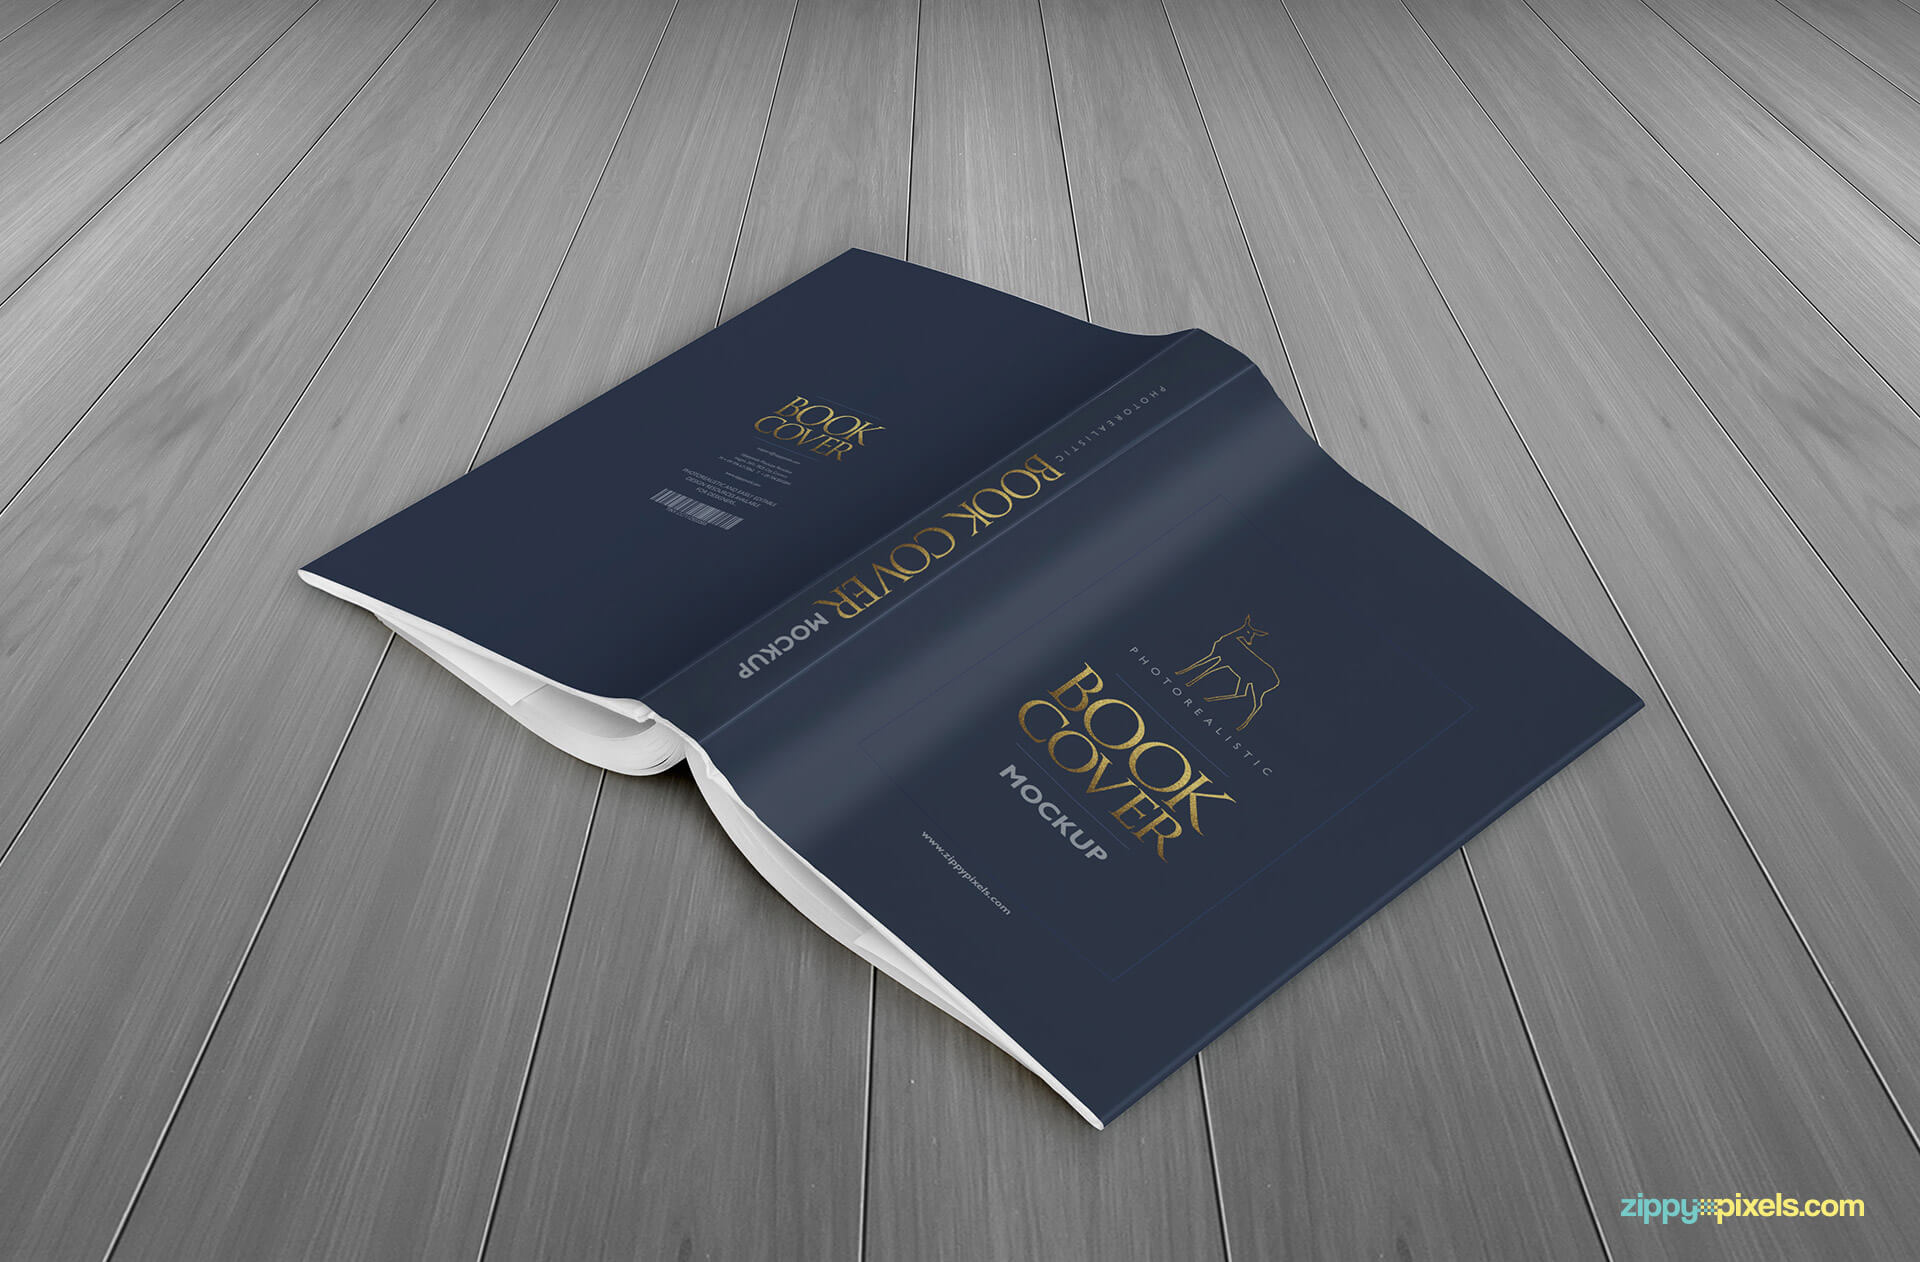 Hardcover Book With Pictures : Realistic hardcover book mockups zippypixels